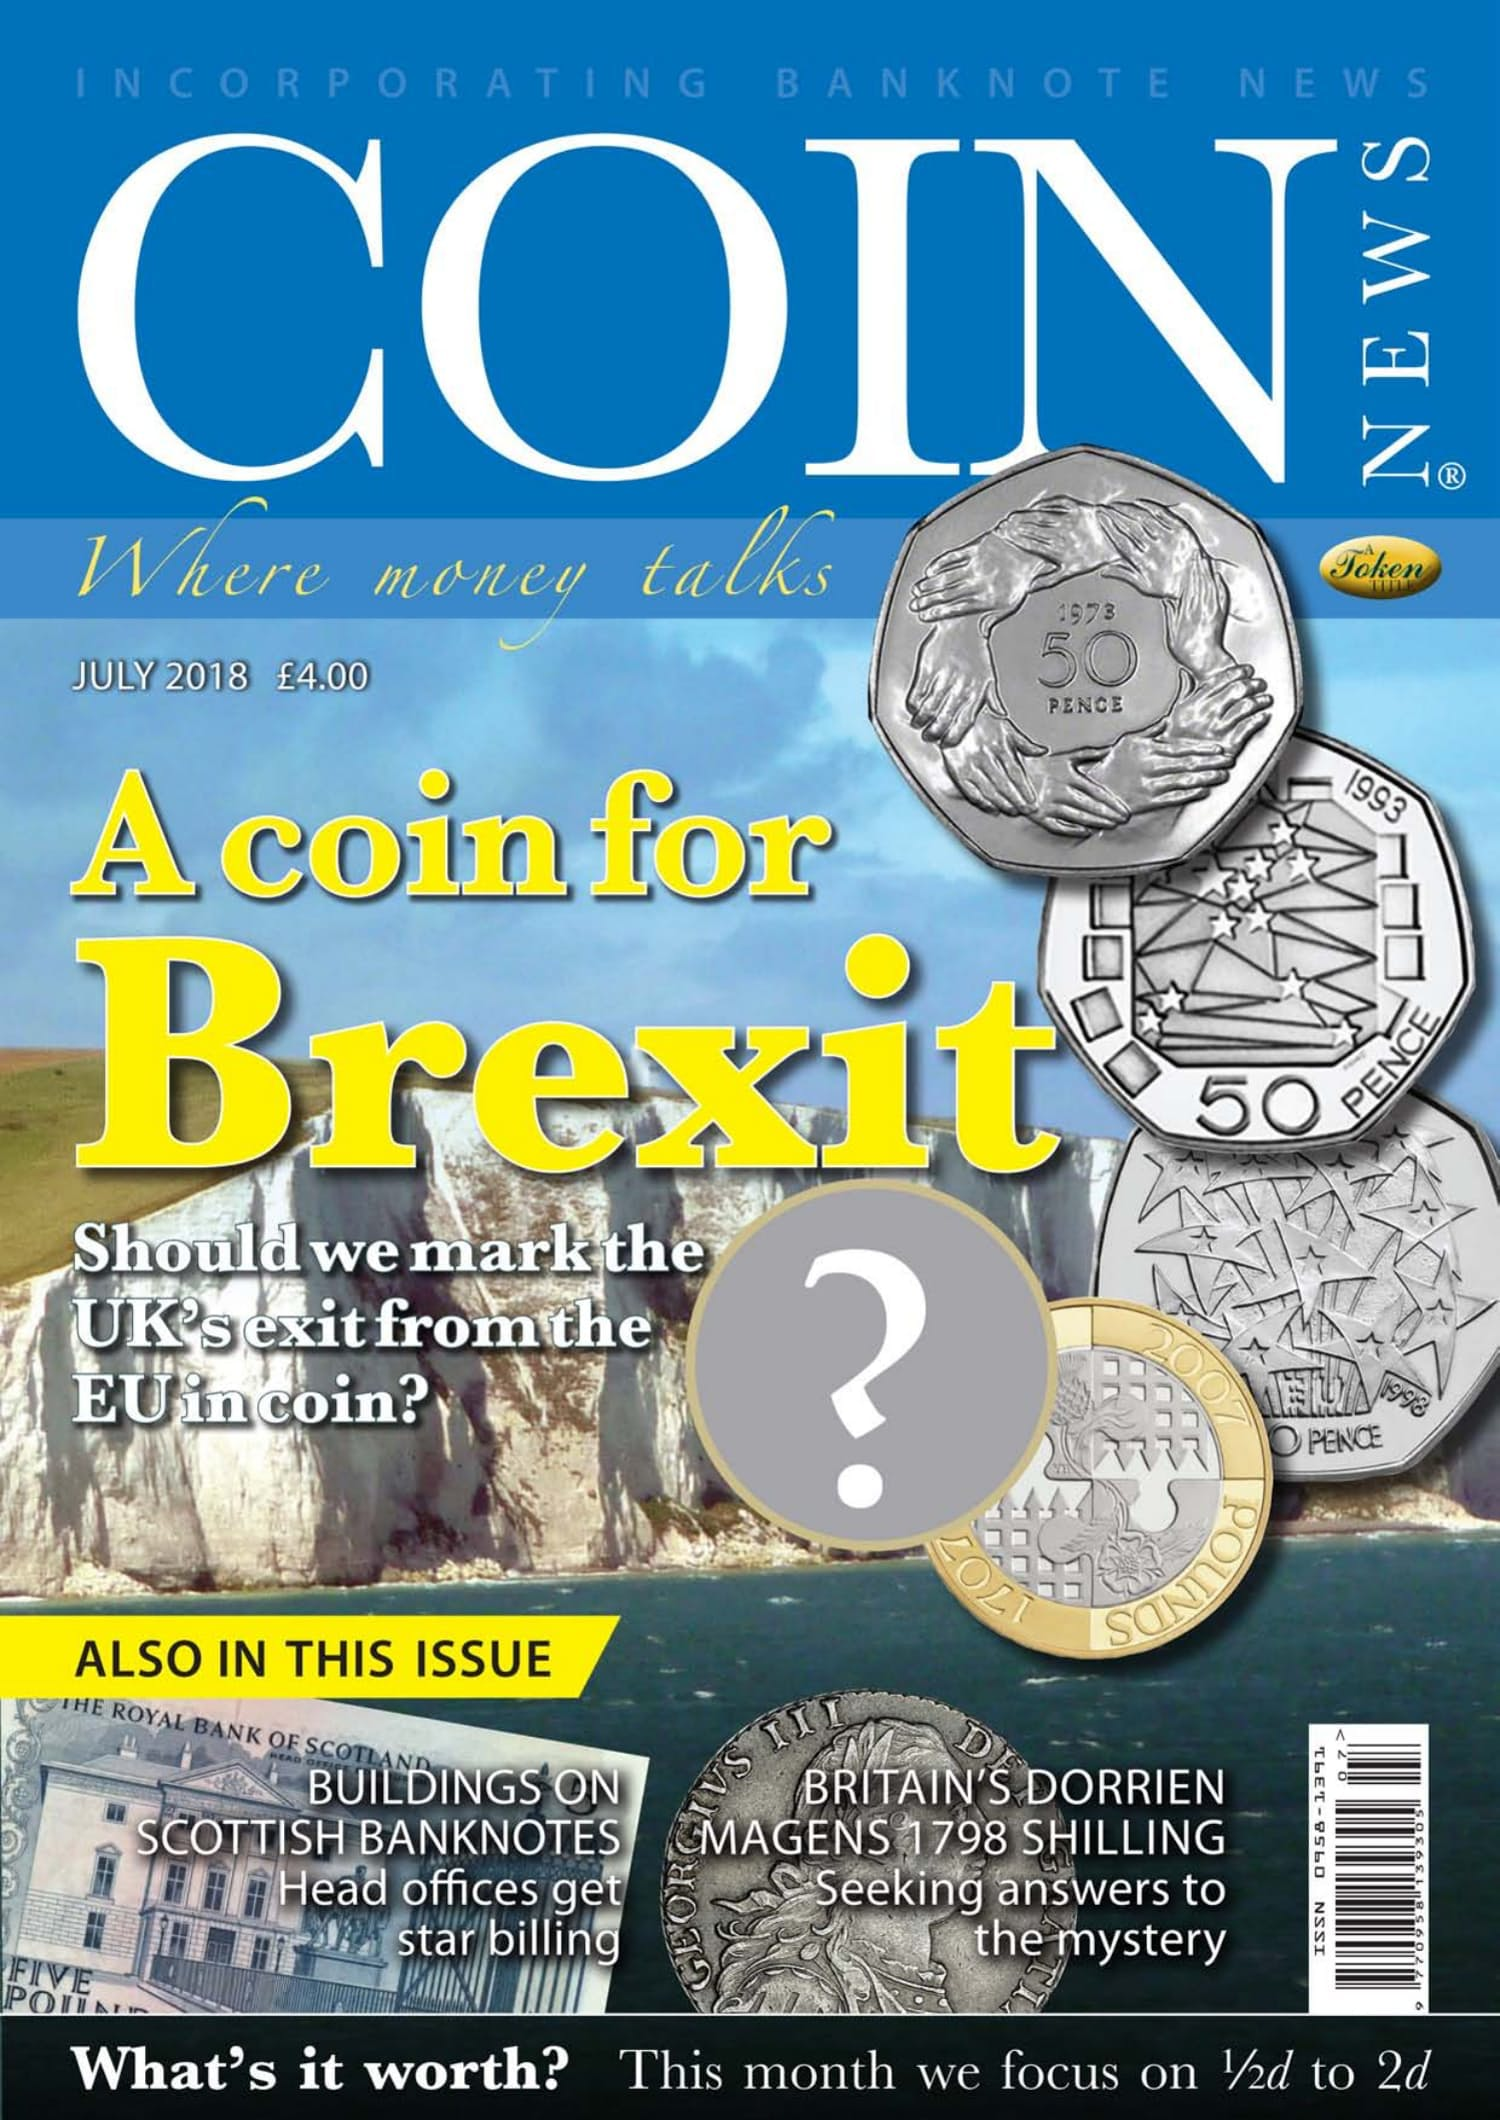 The front cover of Coin News, July 2018 - Volume 55, Number 7